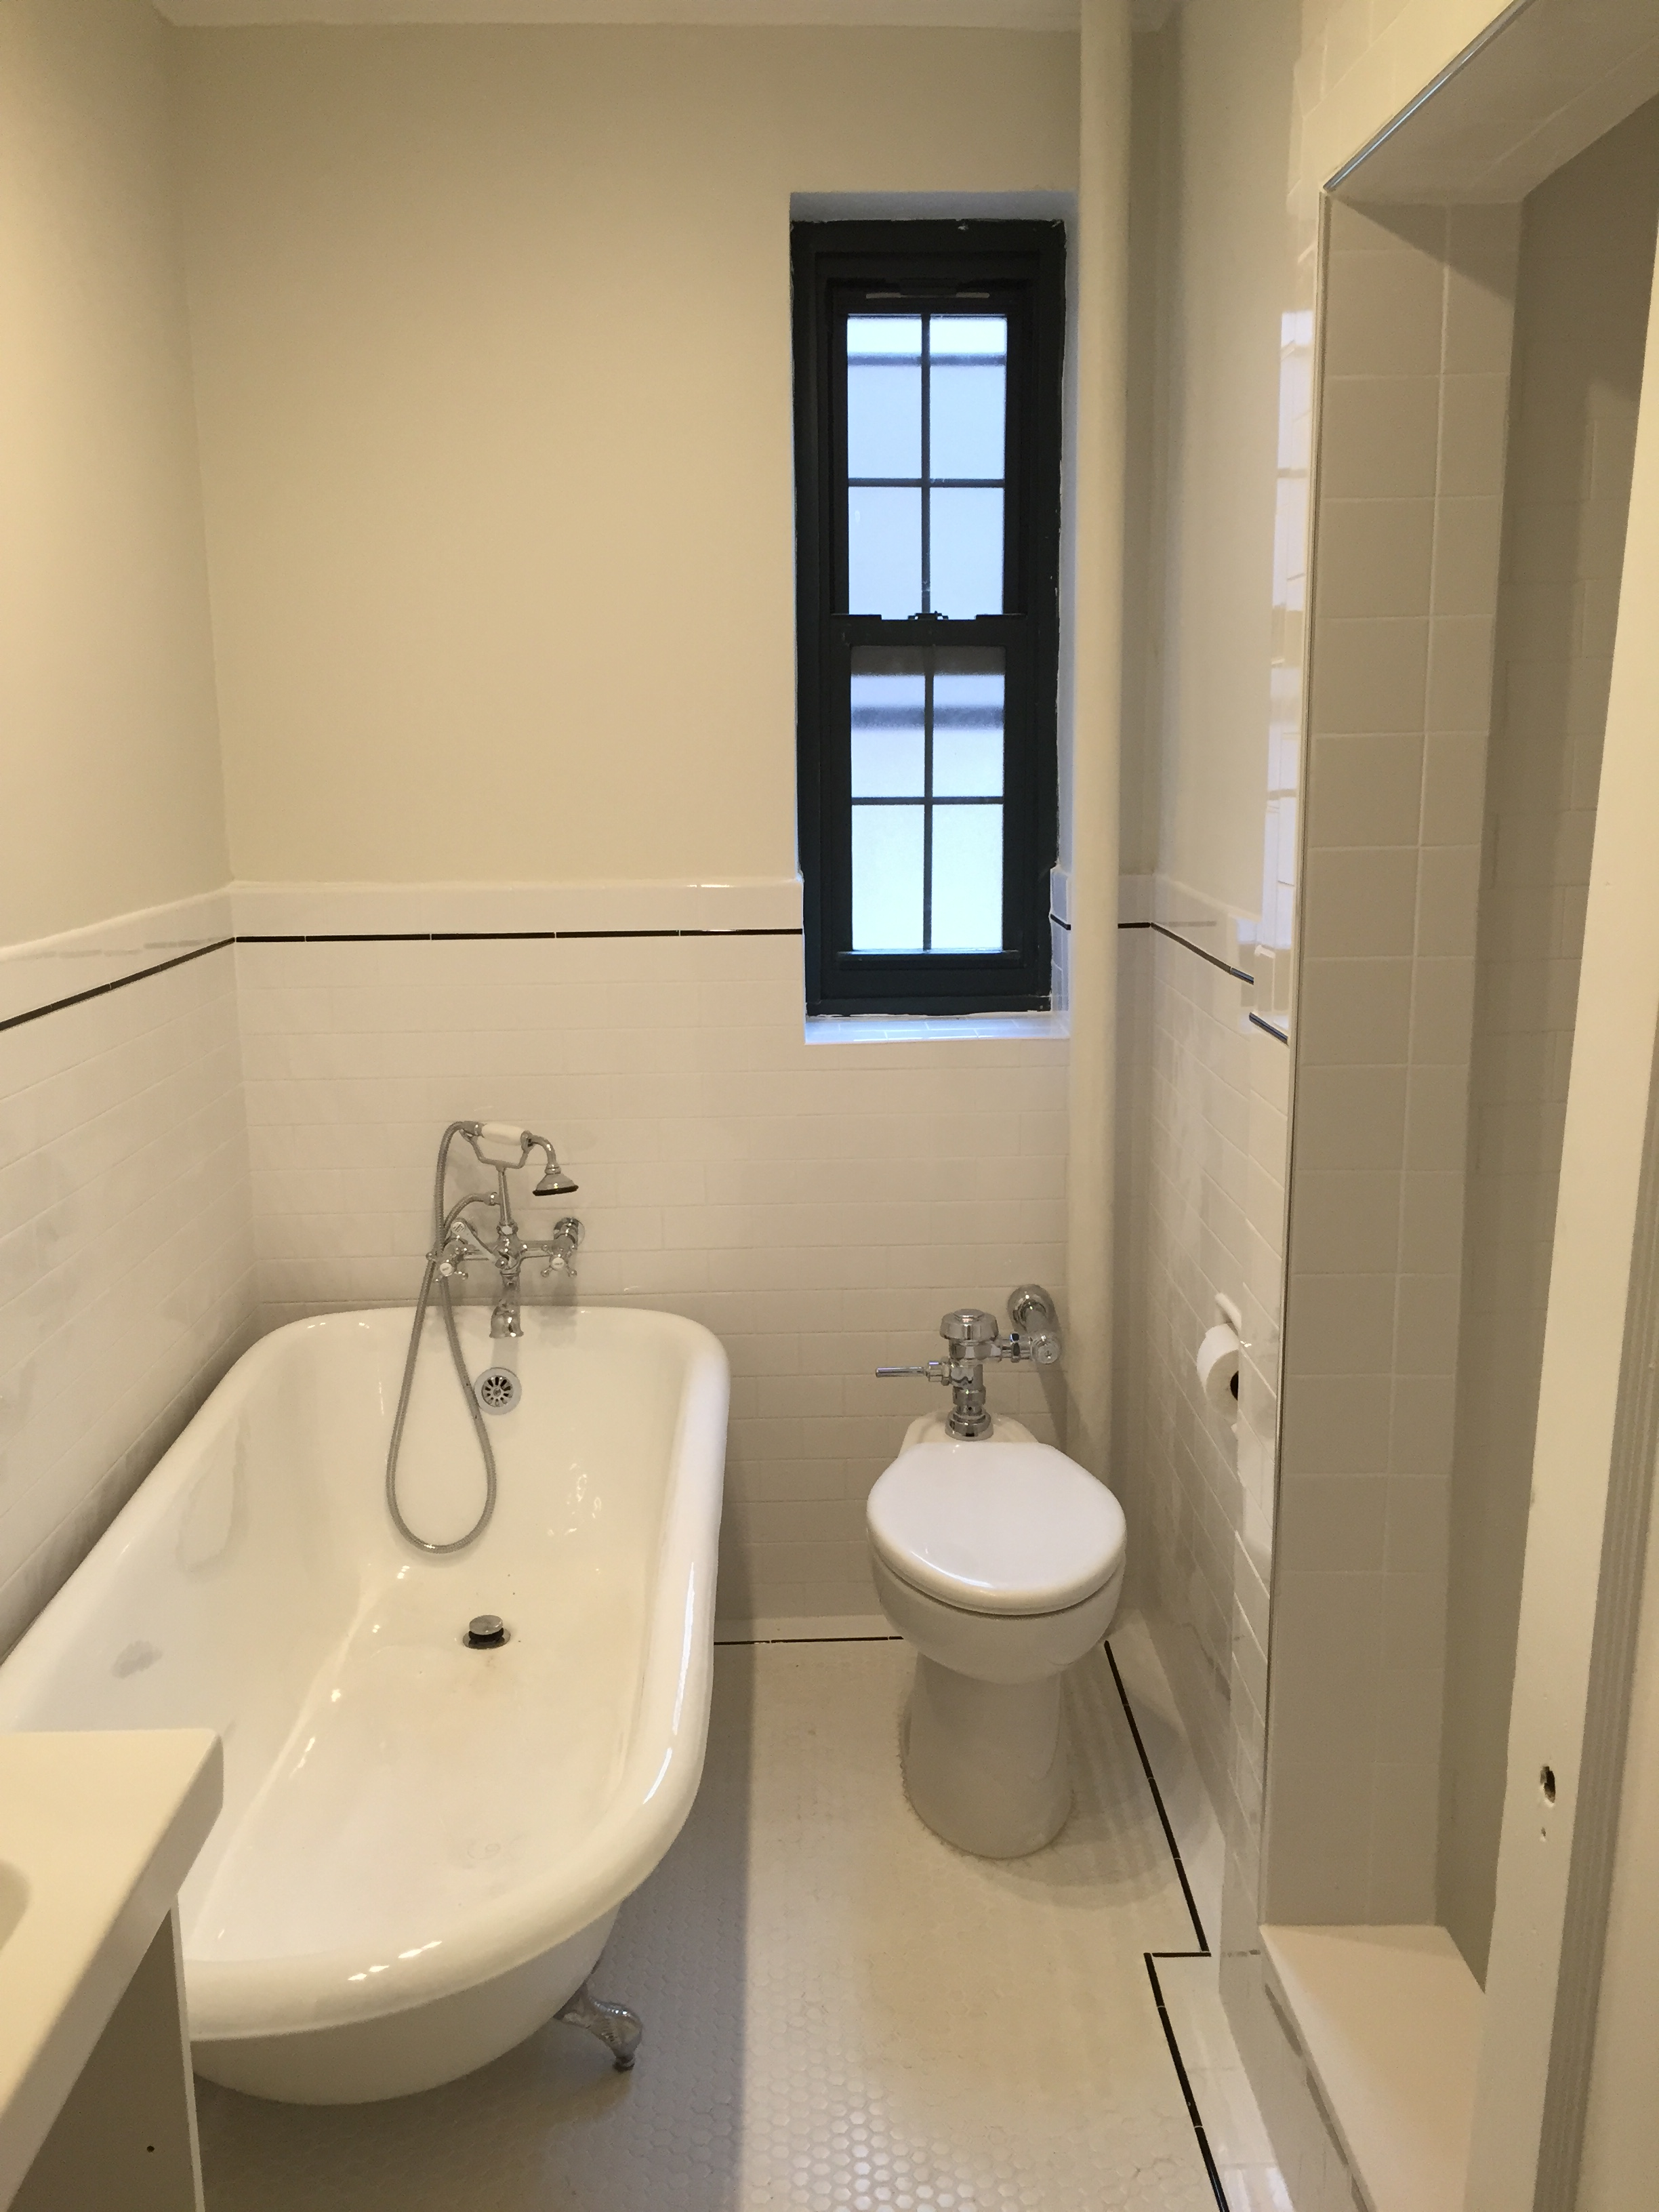 Bathroom Remodel Queens Ny bathroom renovation in queens pre-war coop | eli's painting | new